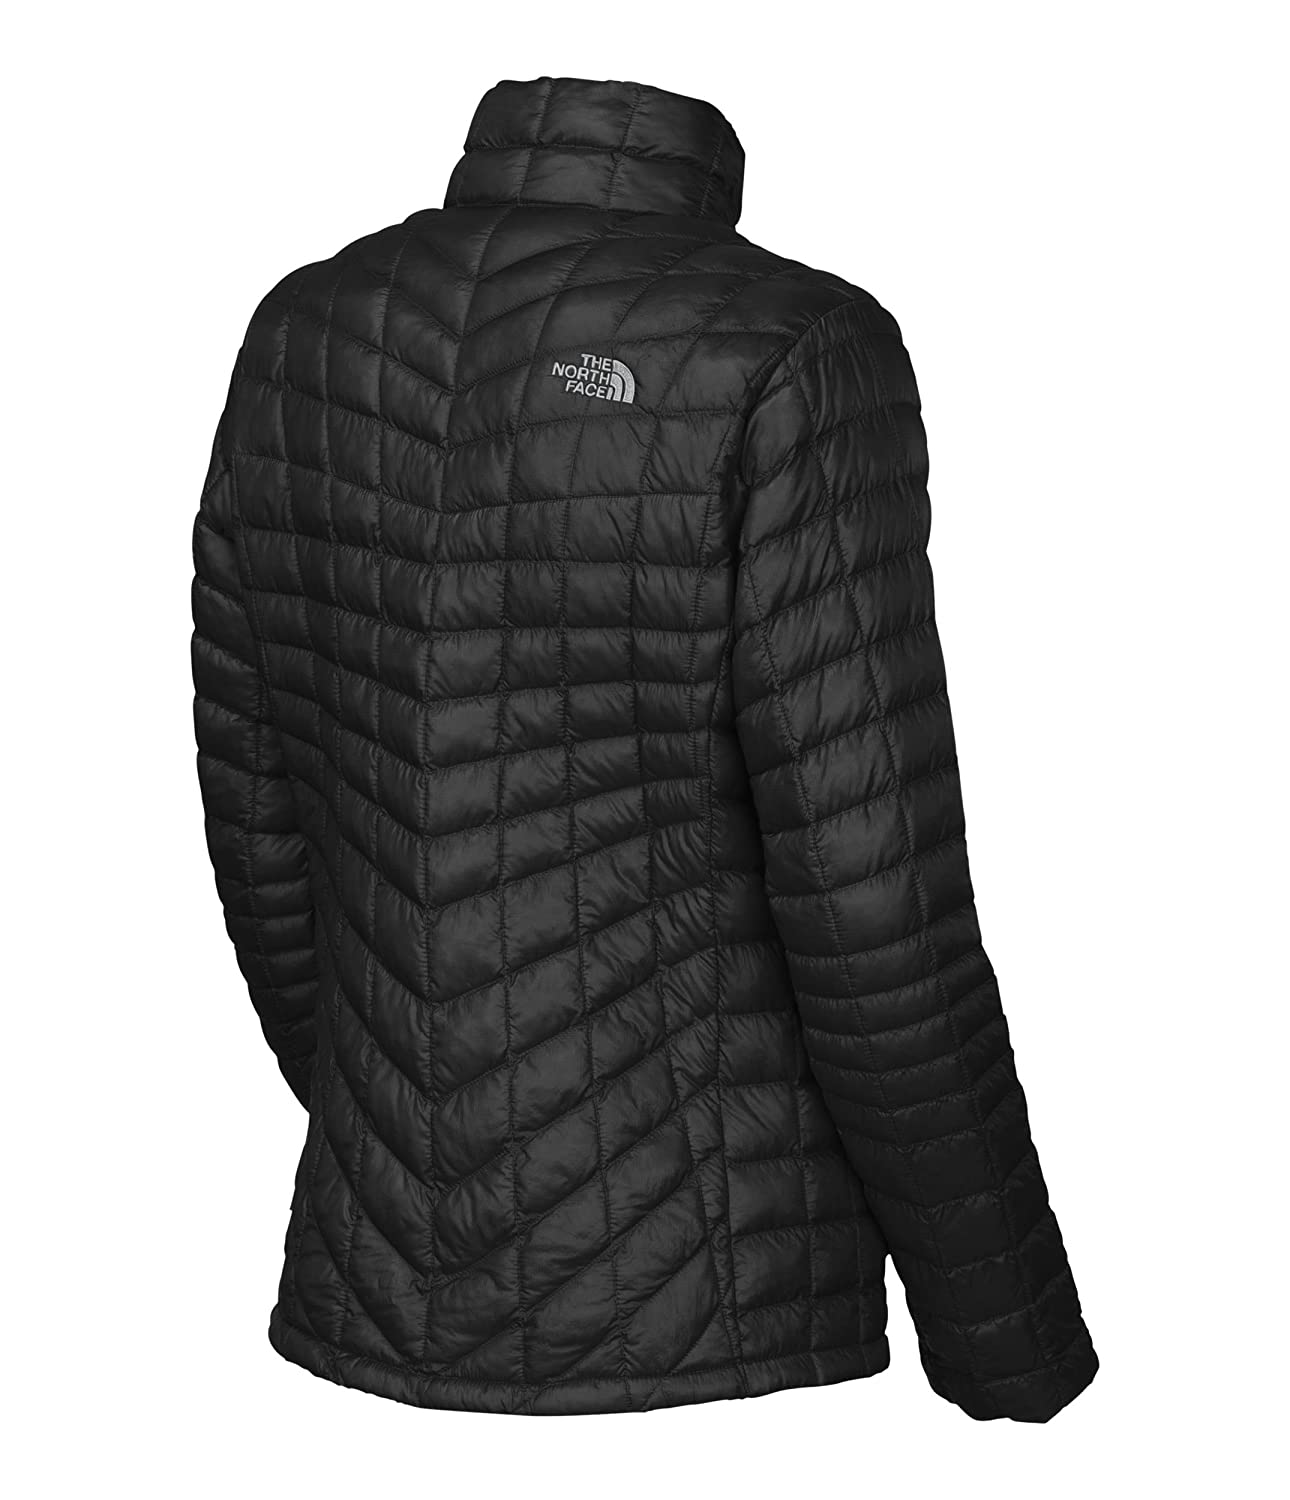 f68fc297b North Face Thermoball Full Zip Jacket Womens Style : Ctl4